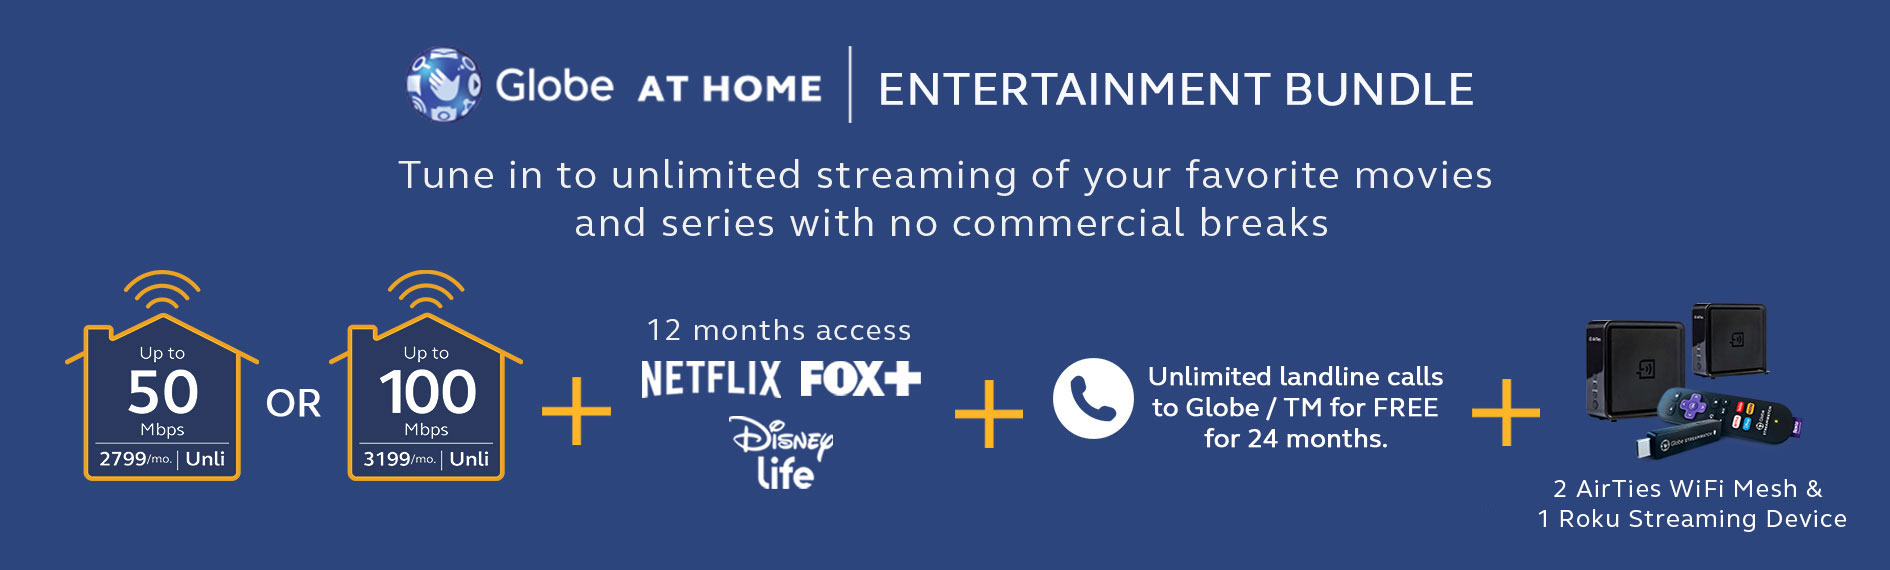 Globe At Home Entertainment Bundle with Airties and Roku